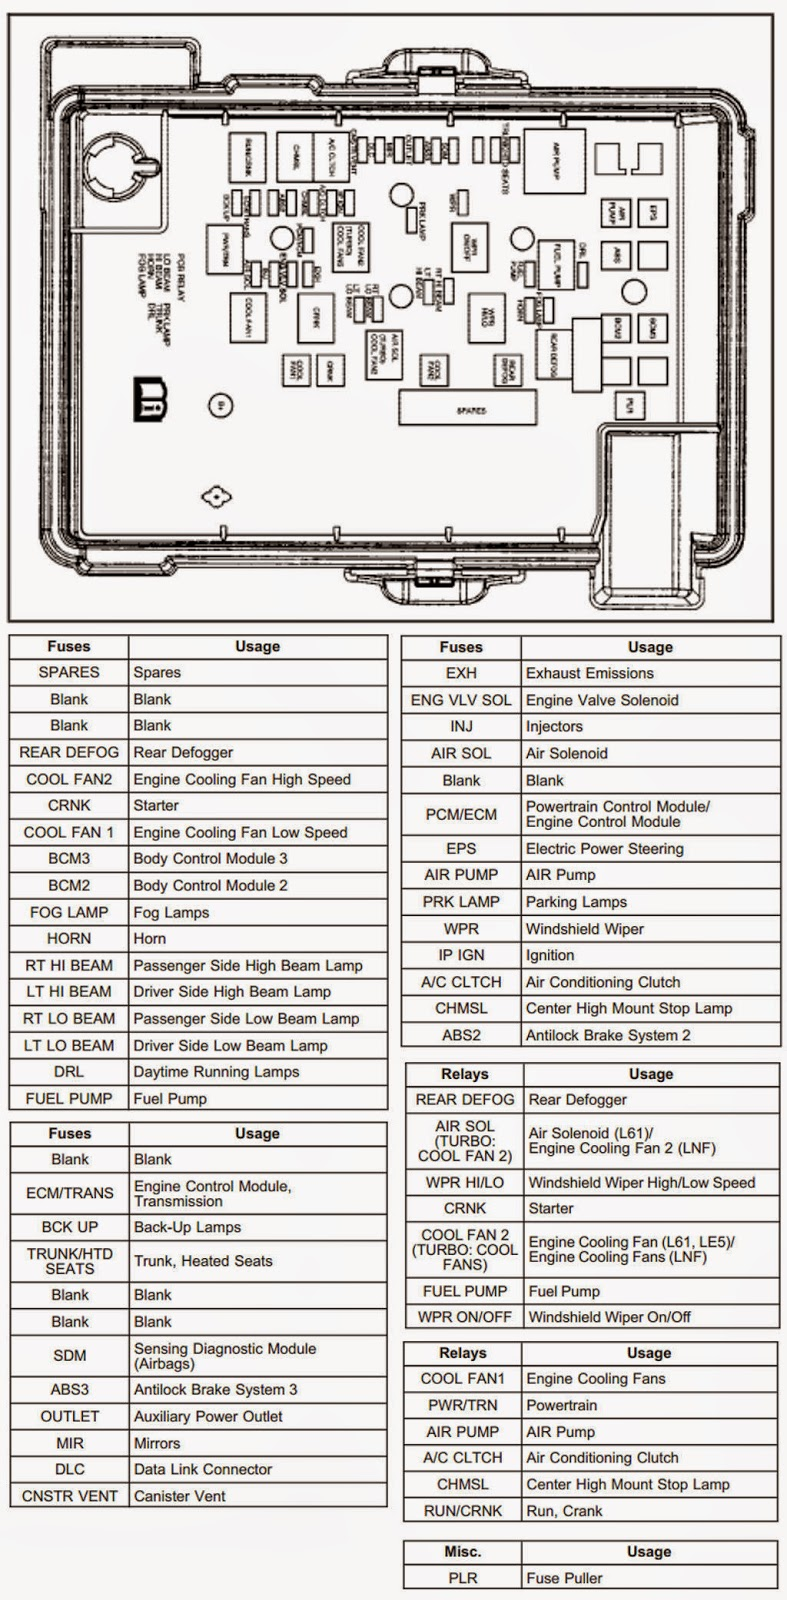 2005 Chevy Cobalt Fuse Box Wiring Diagram Schematics Ford Focus Fuse Box 08 Cobalt  Fuse Box